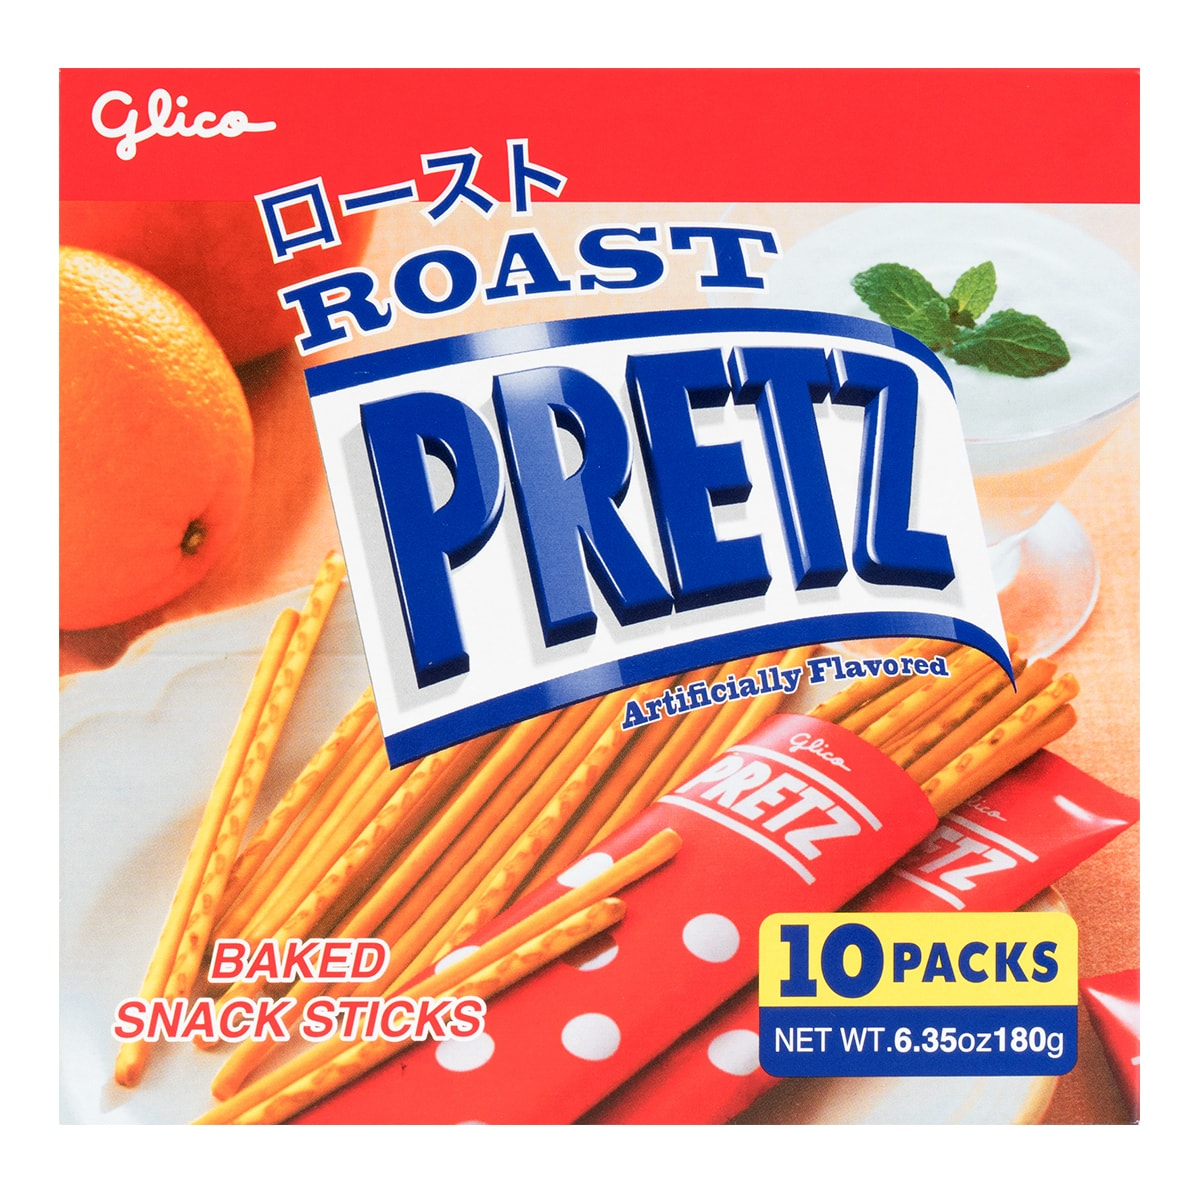 GLICO Prezt Roasted Stick 10packs Party Size 180g